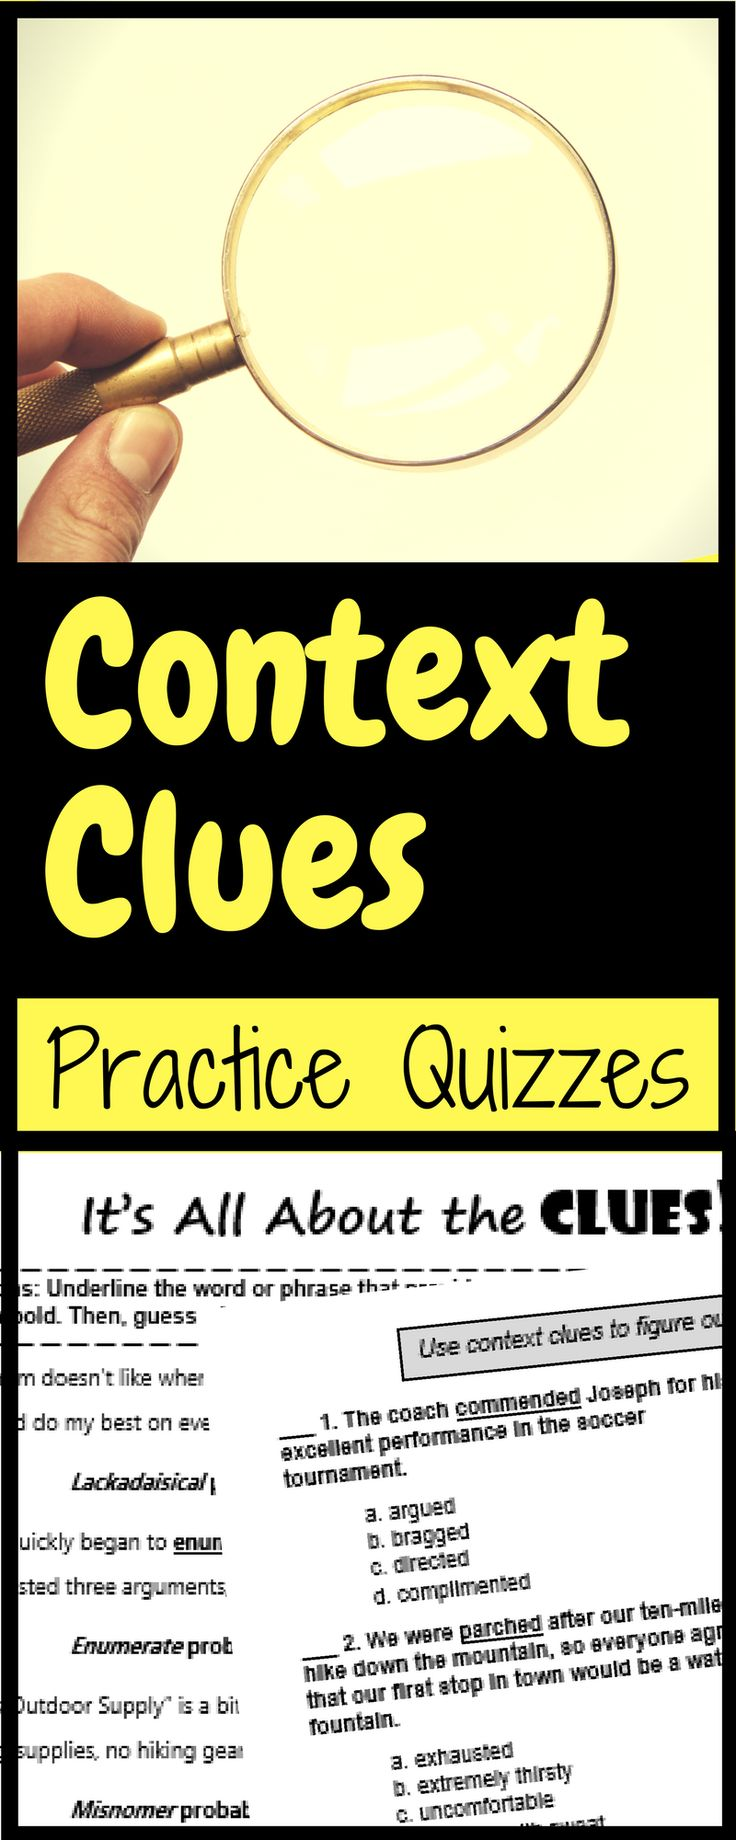 Practice reading for context clues with this set of four context clue quizzes, including lots of sentence examples in both short-answer and multiple-choice formats. These are great for homework, quizzes, whole-class practice, or end-of-year test review!